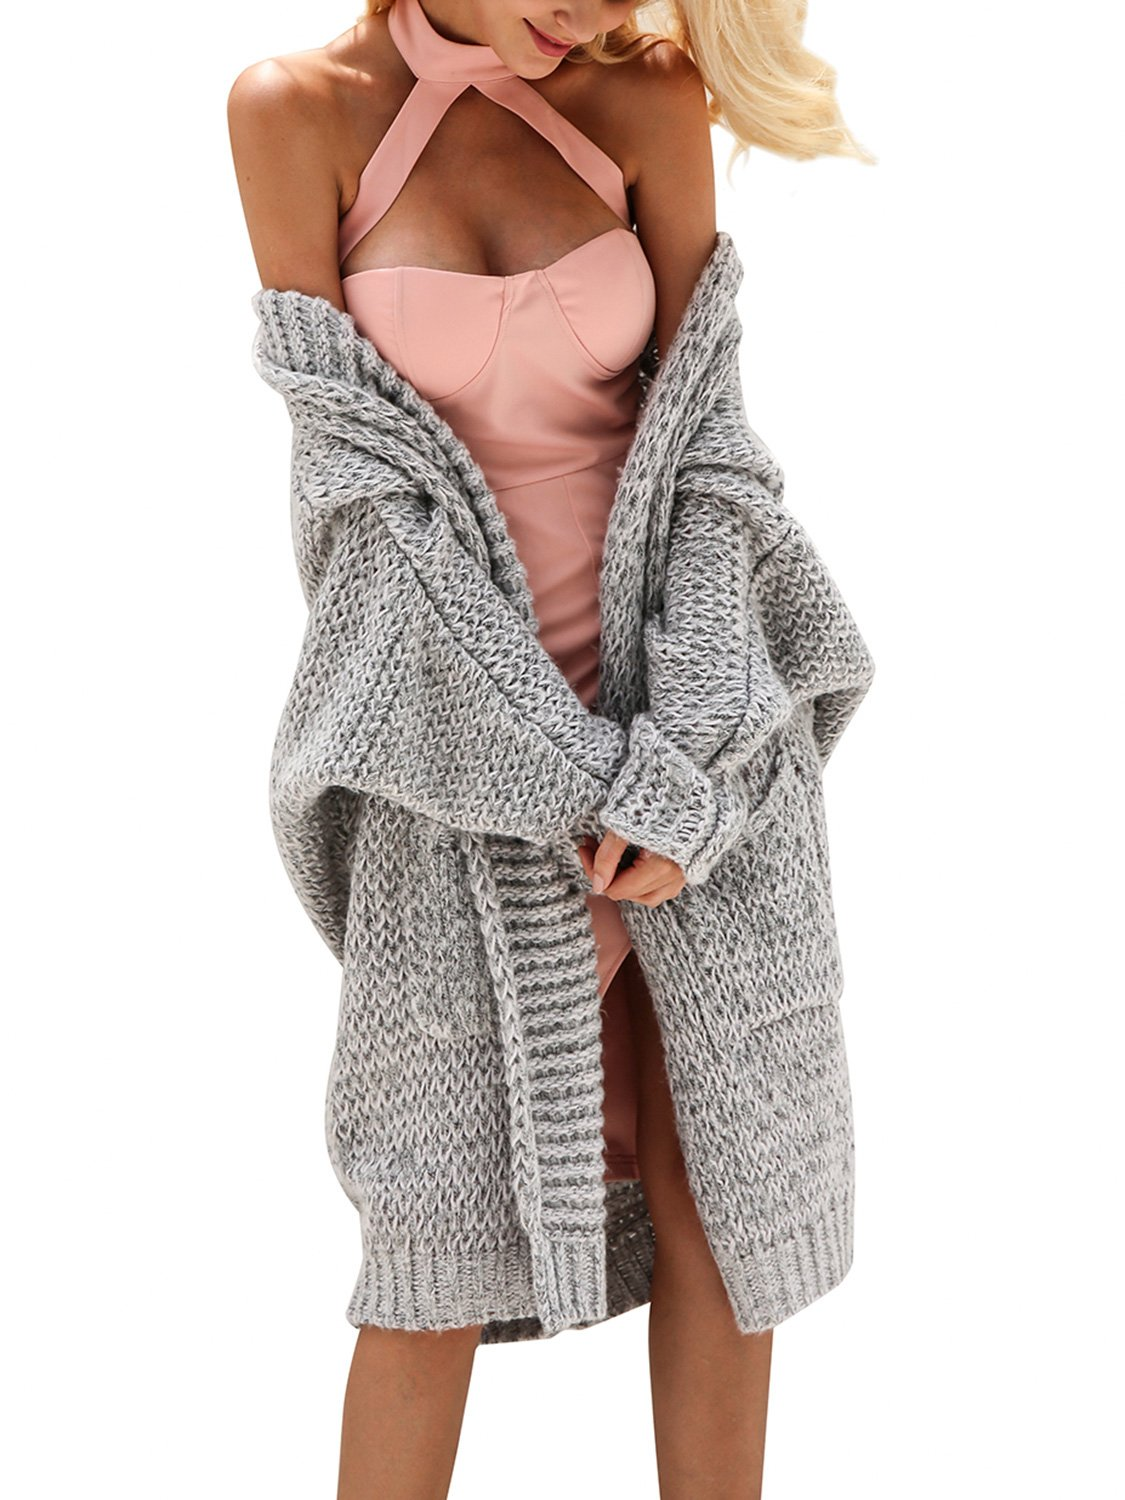 Glamaker Women's Casual Open Front Long Cardigan Knit Sweater with Long Sleeves GTP00508A0